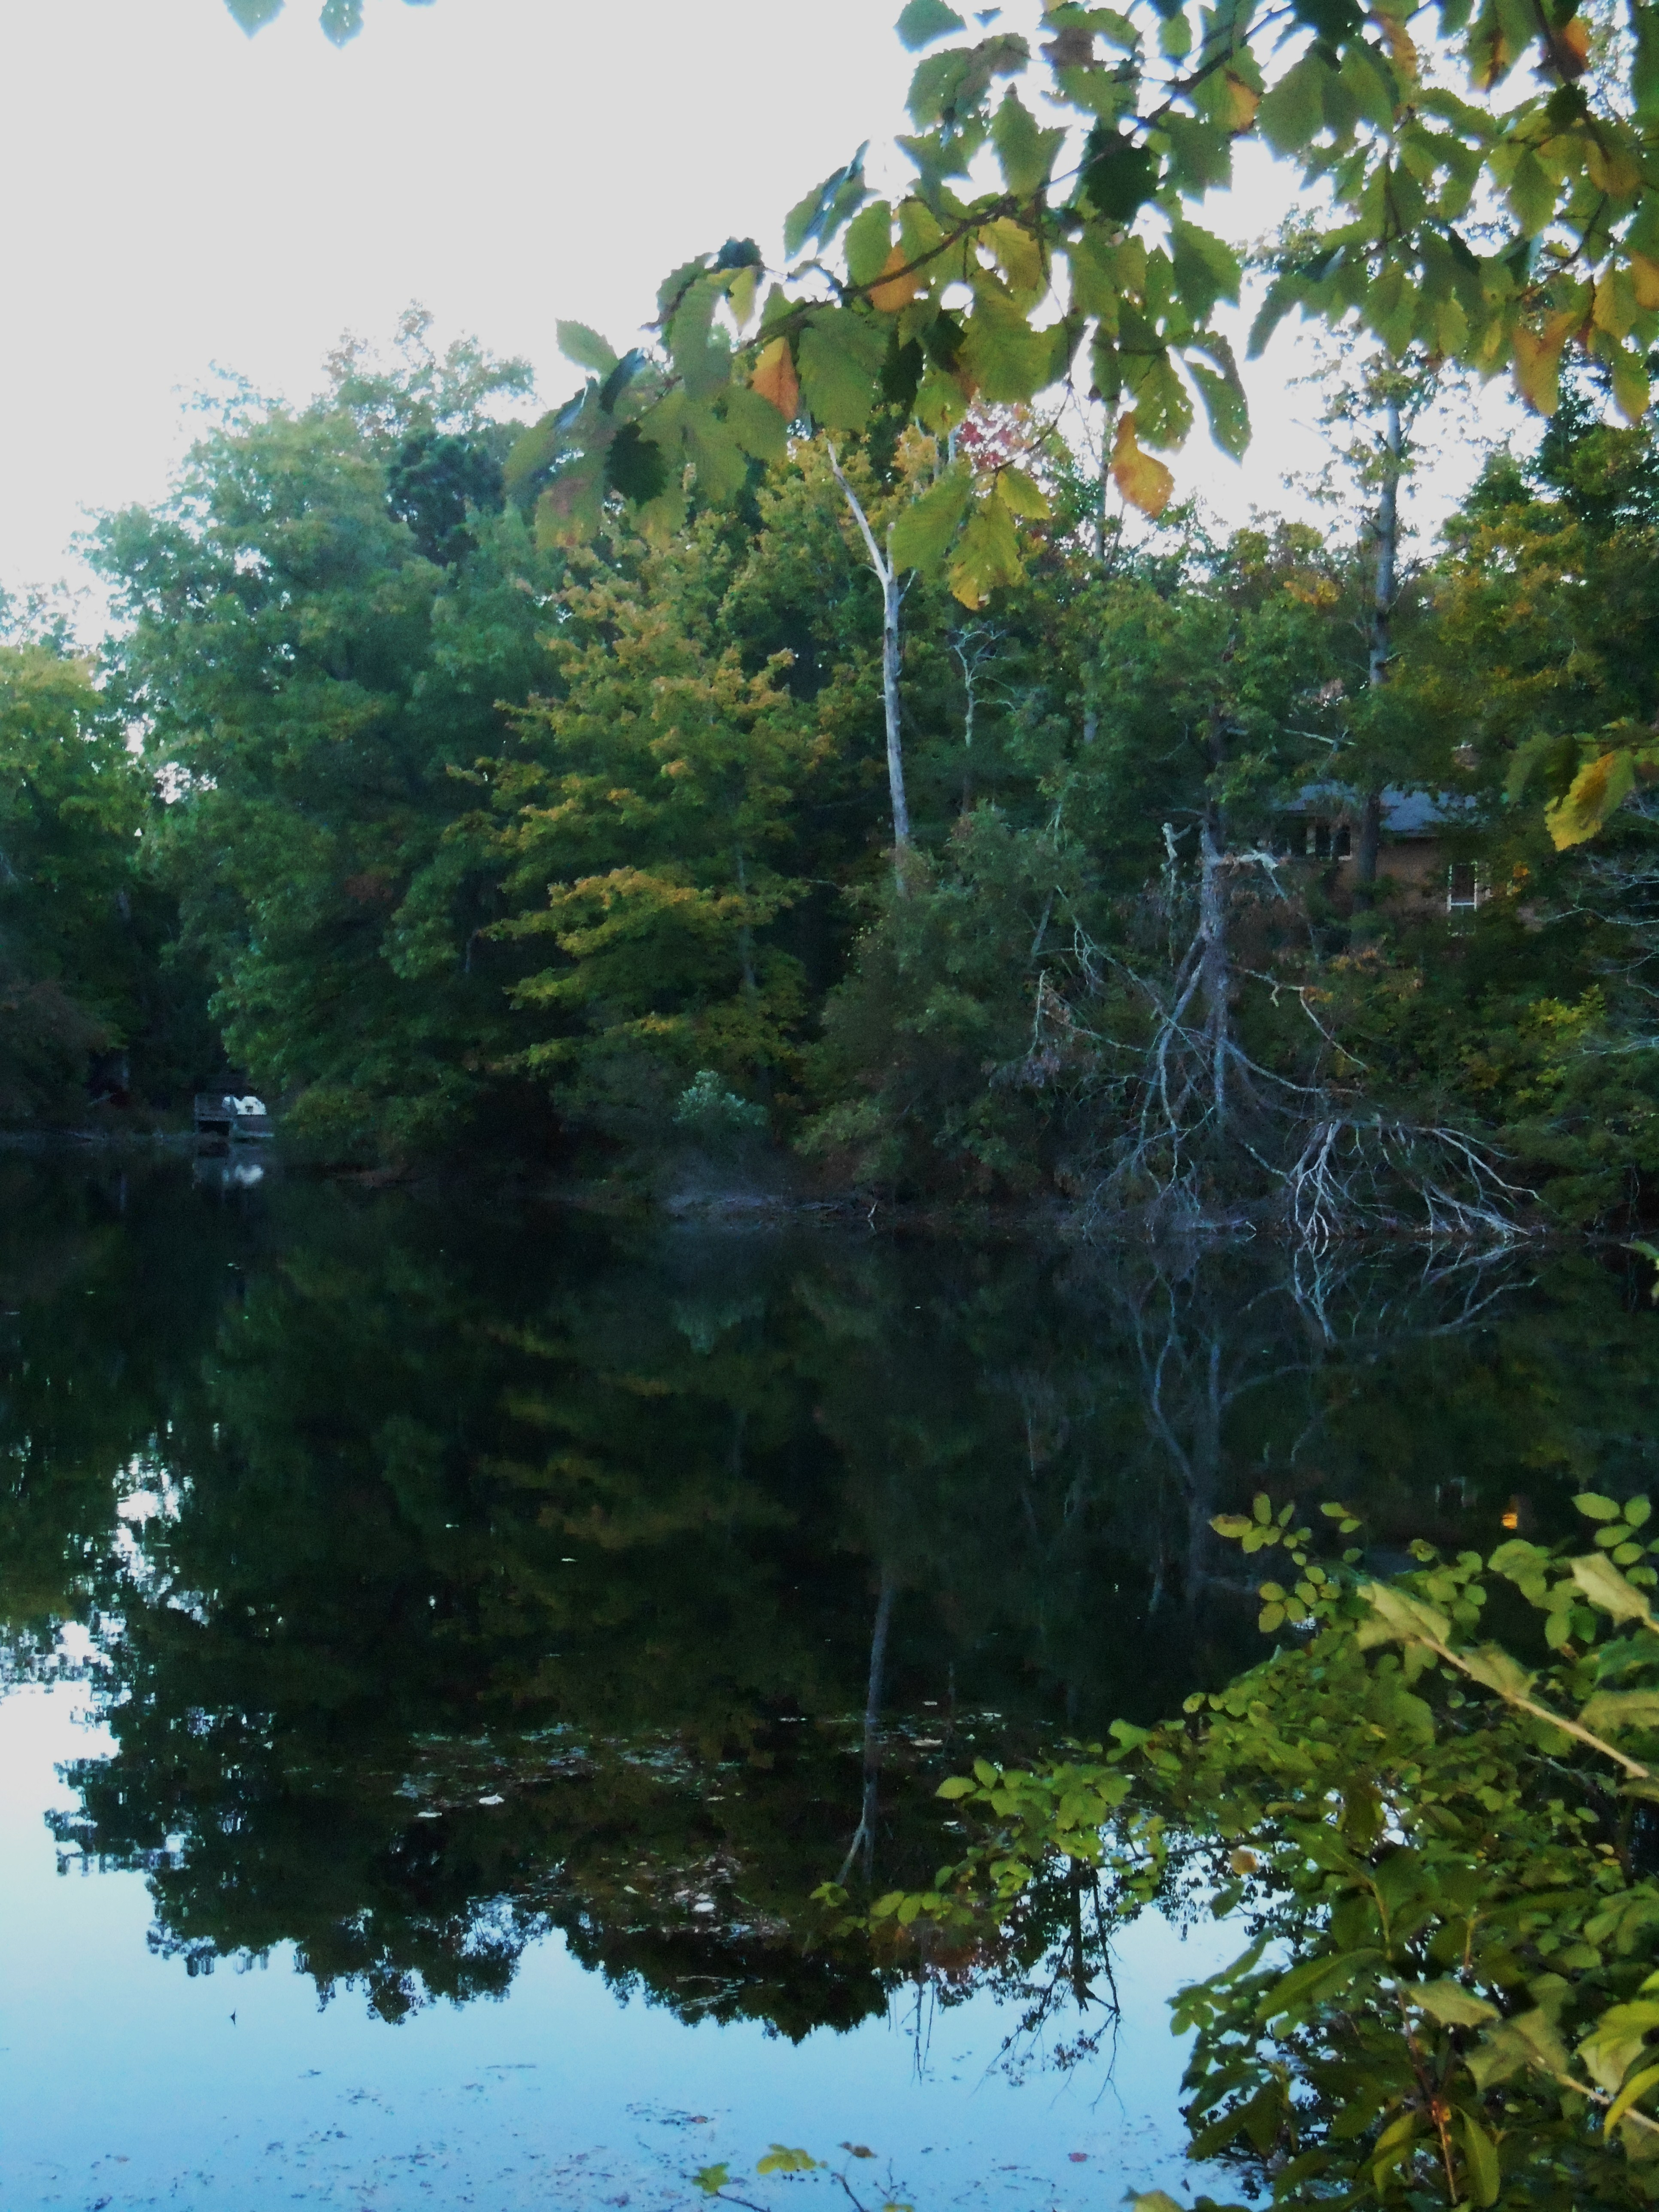 Looking across the pond, the homes are still mostly hidden by trees.